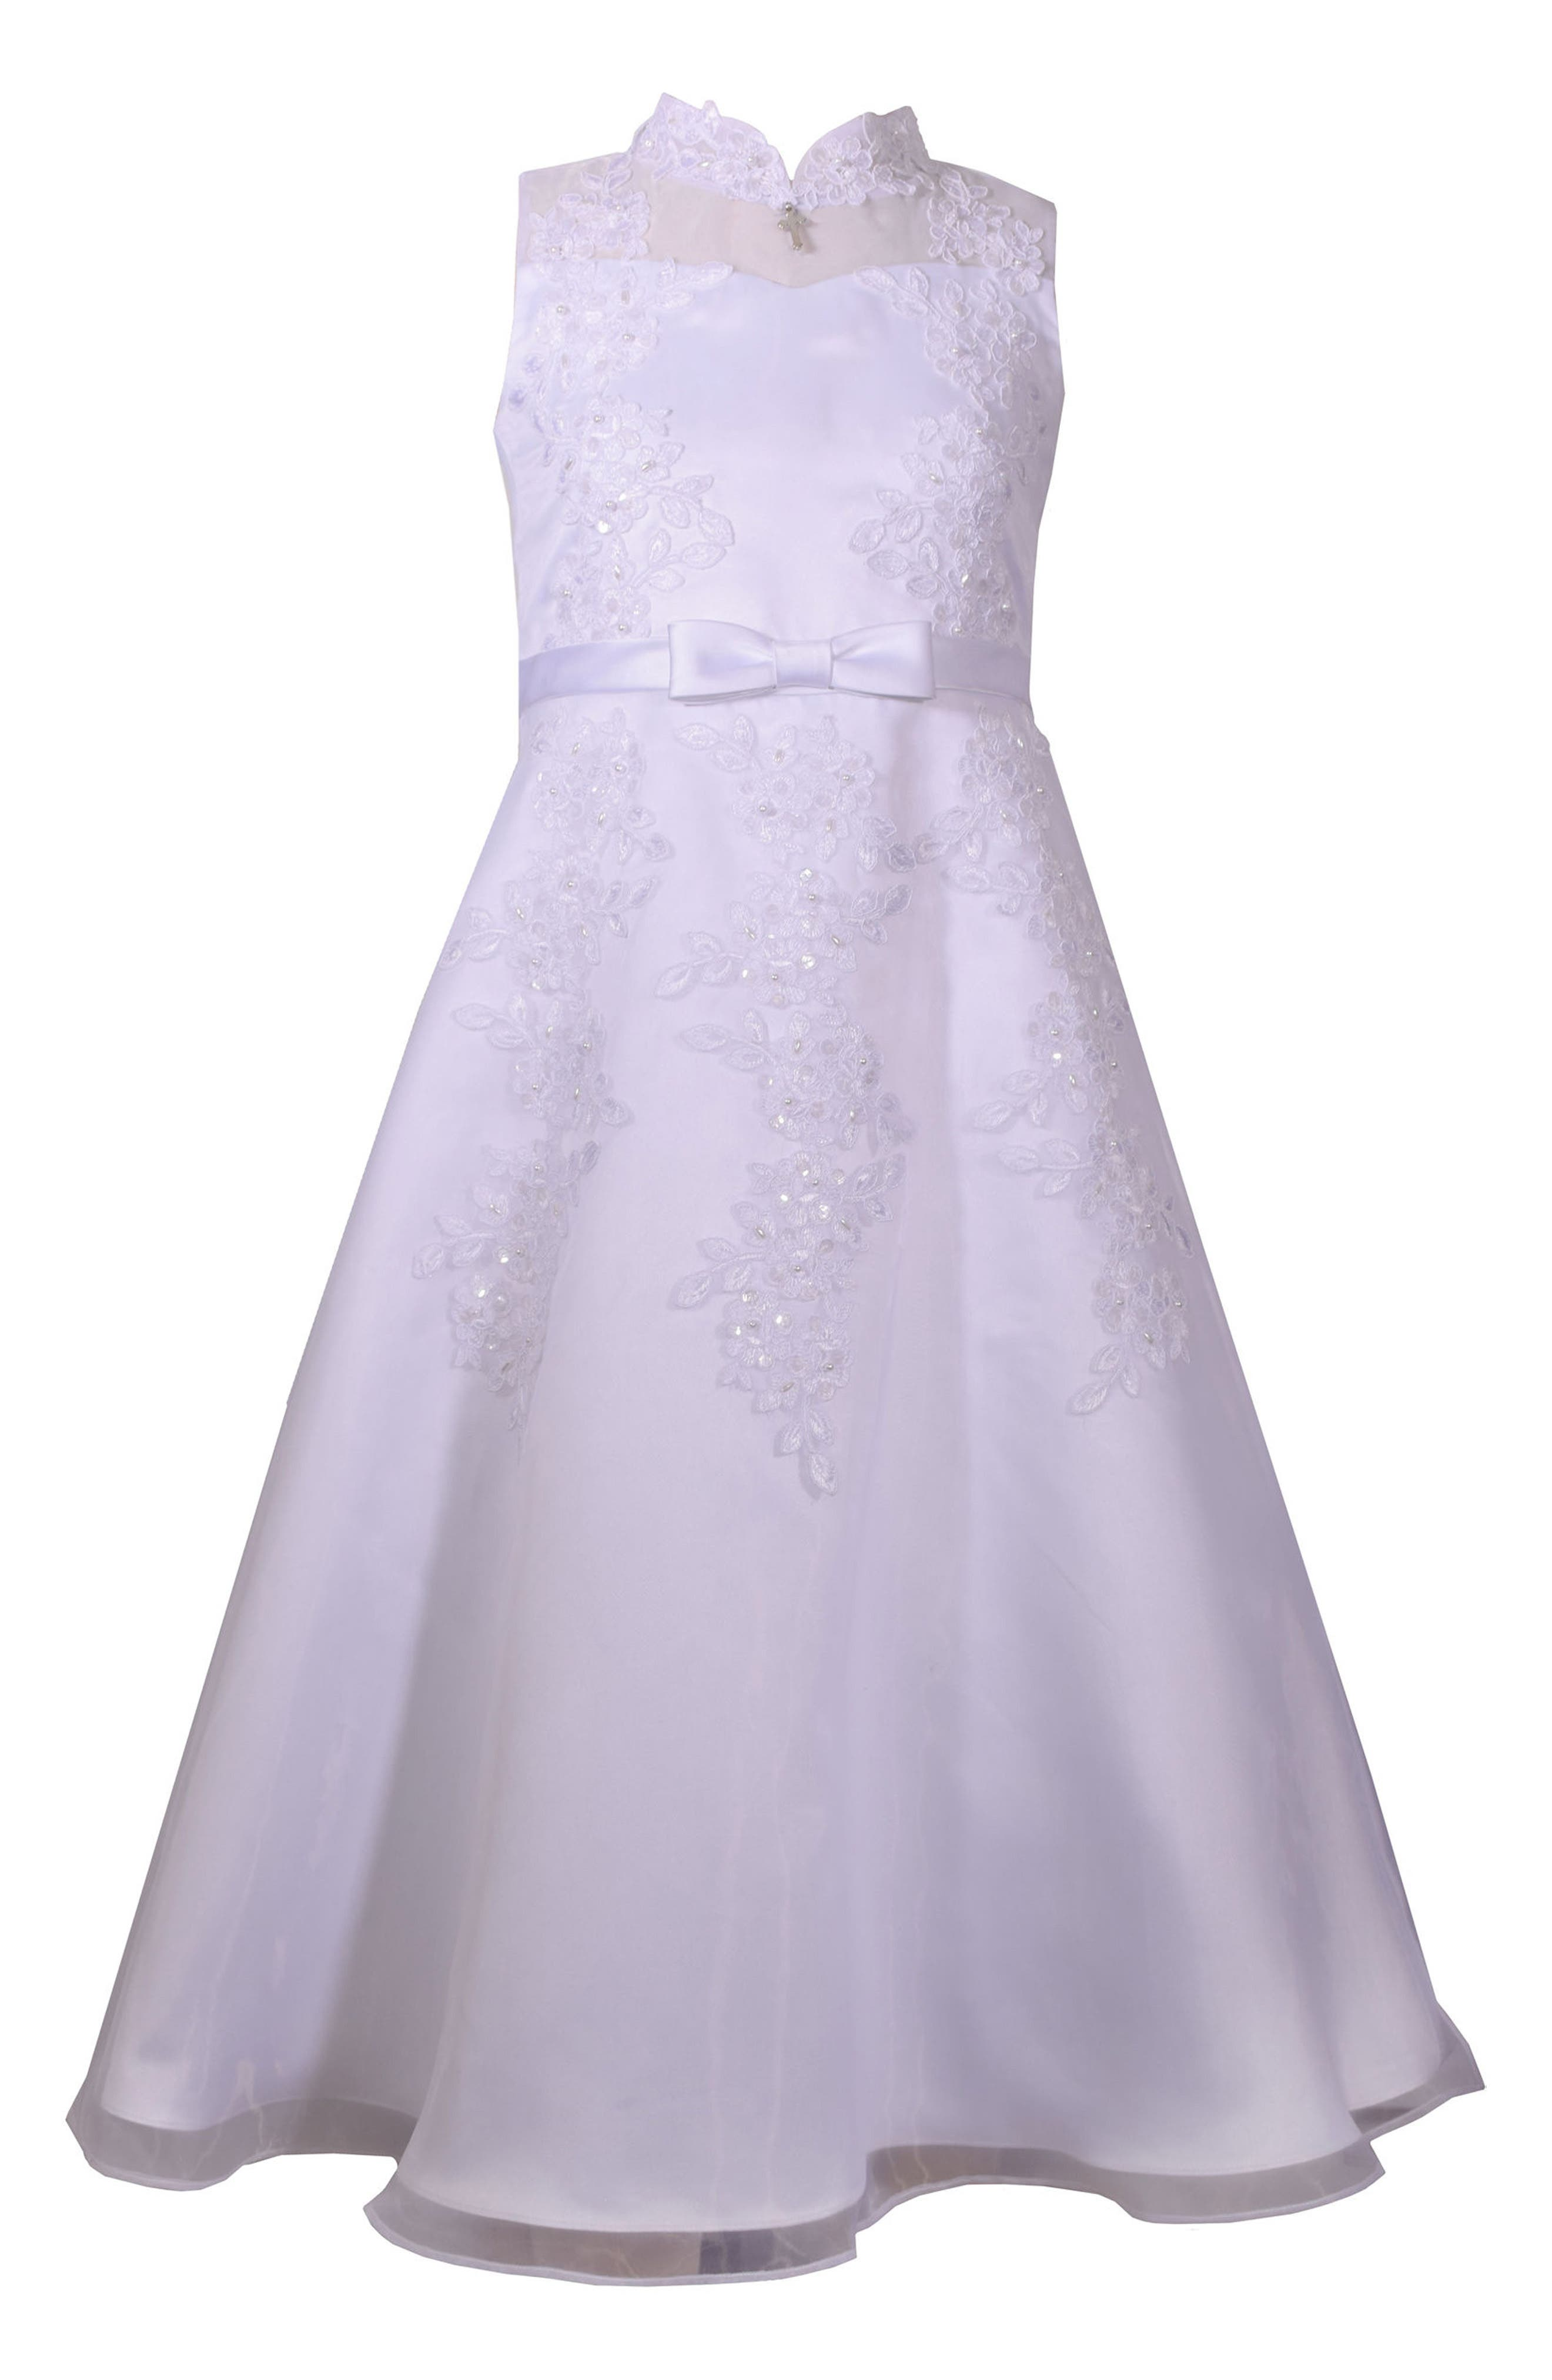 Iris & Ivy Sequin First Communion Dress (Little Girls & Big Girls)